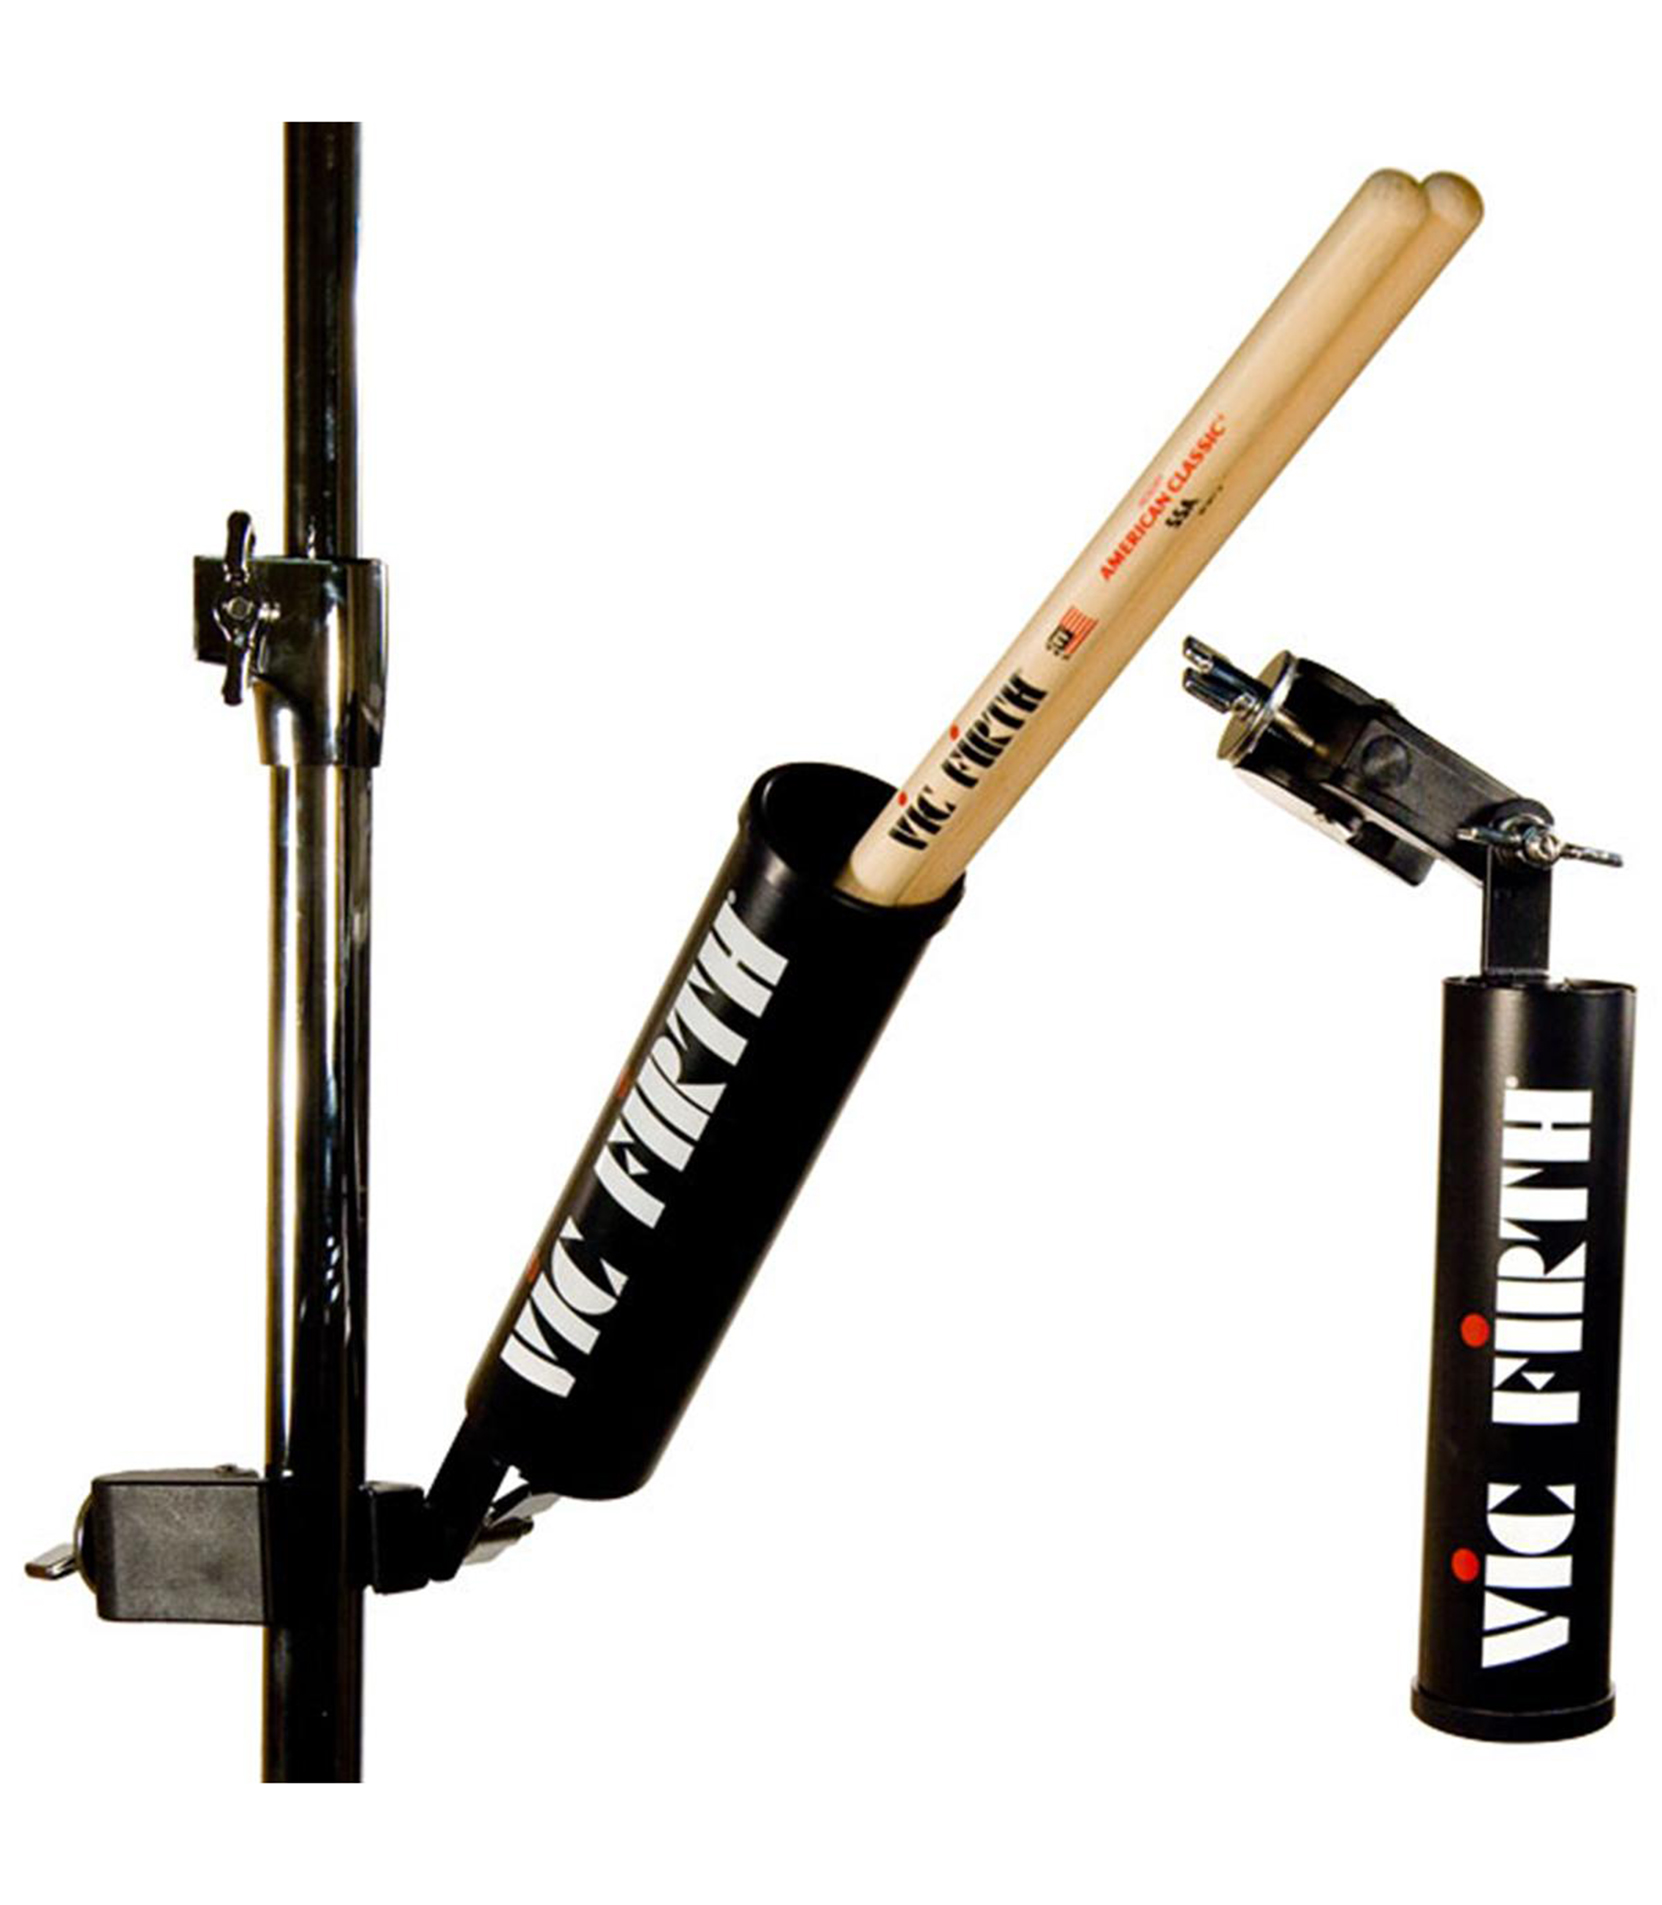 Buy vicfirth - Stick Caddy